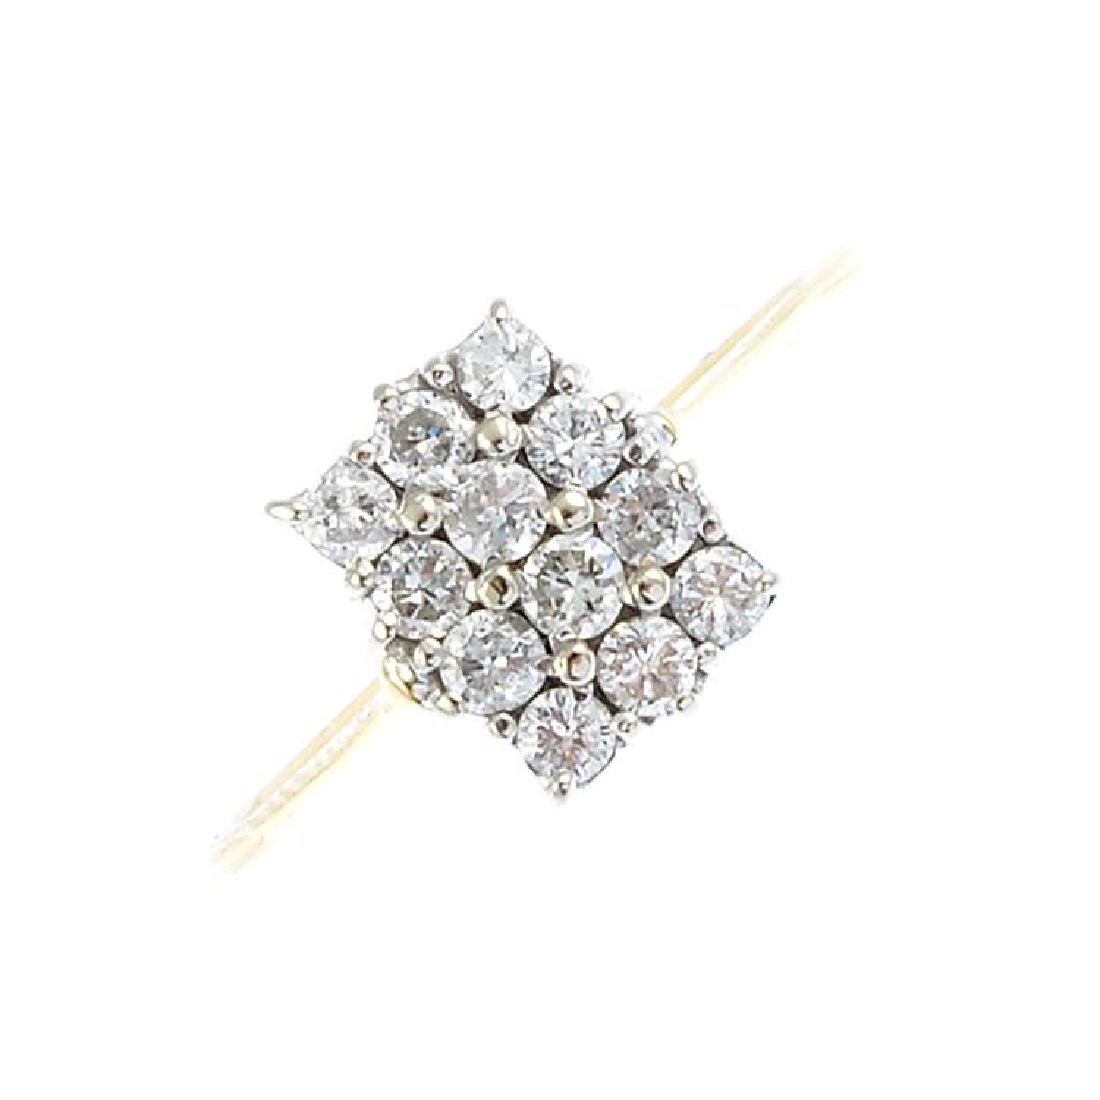 A gold diamond cluster ring. Designed as a